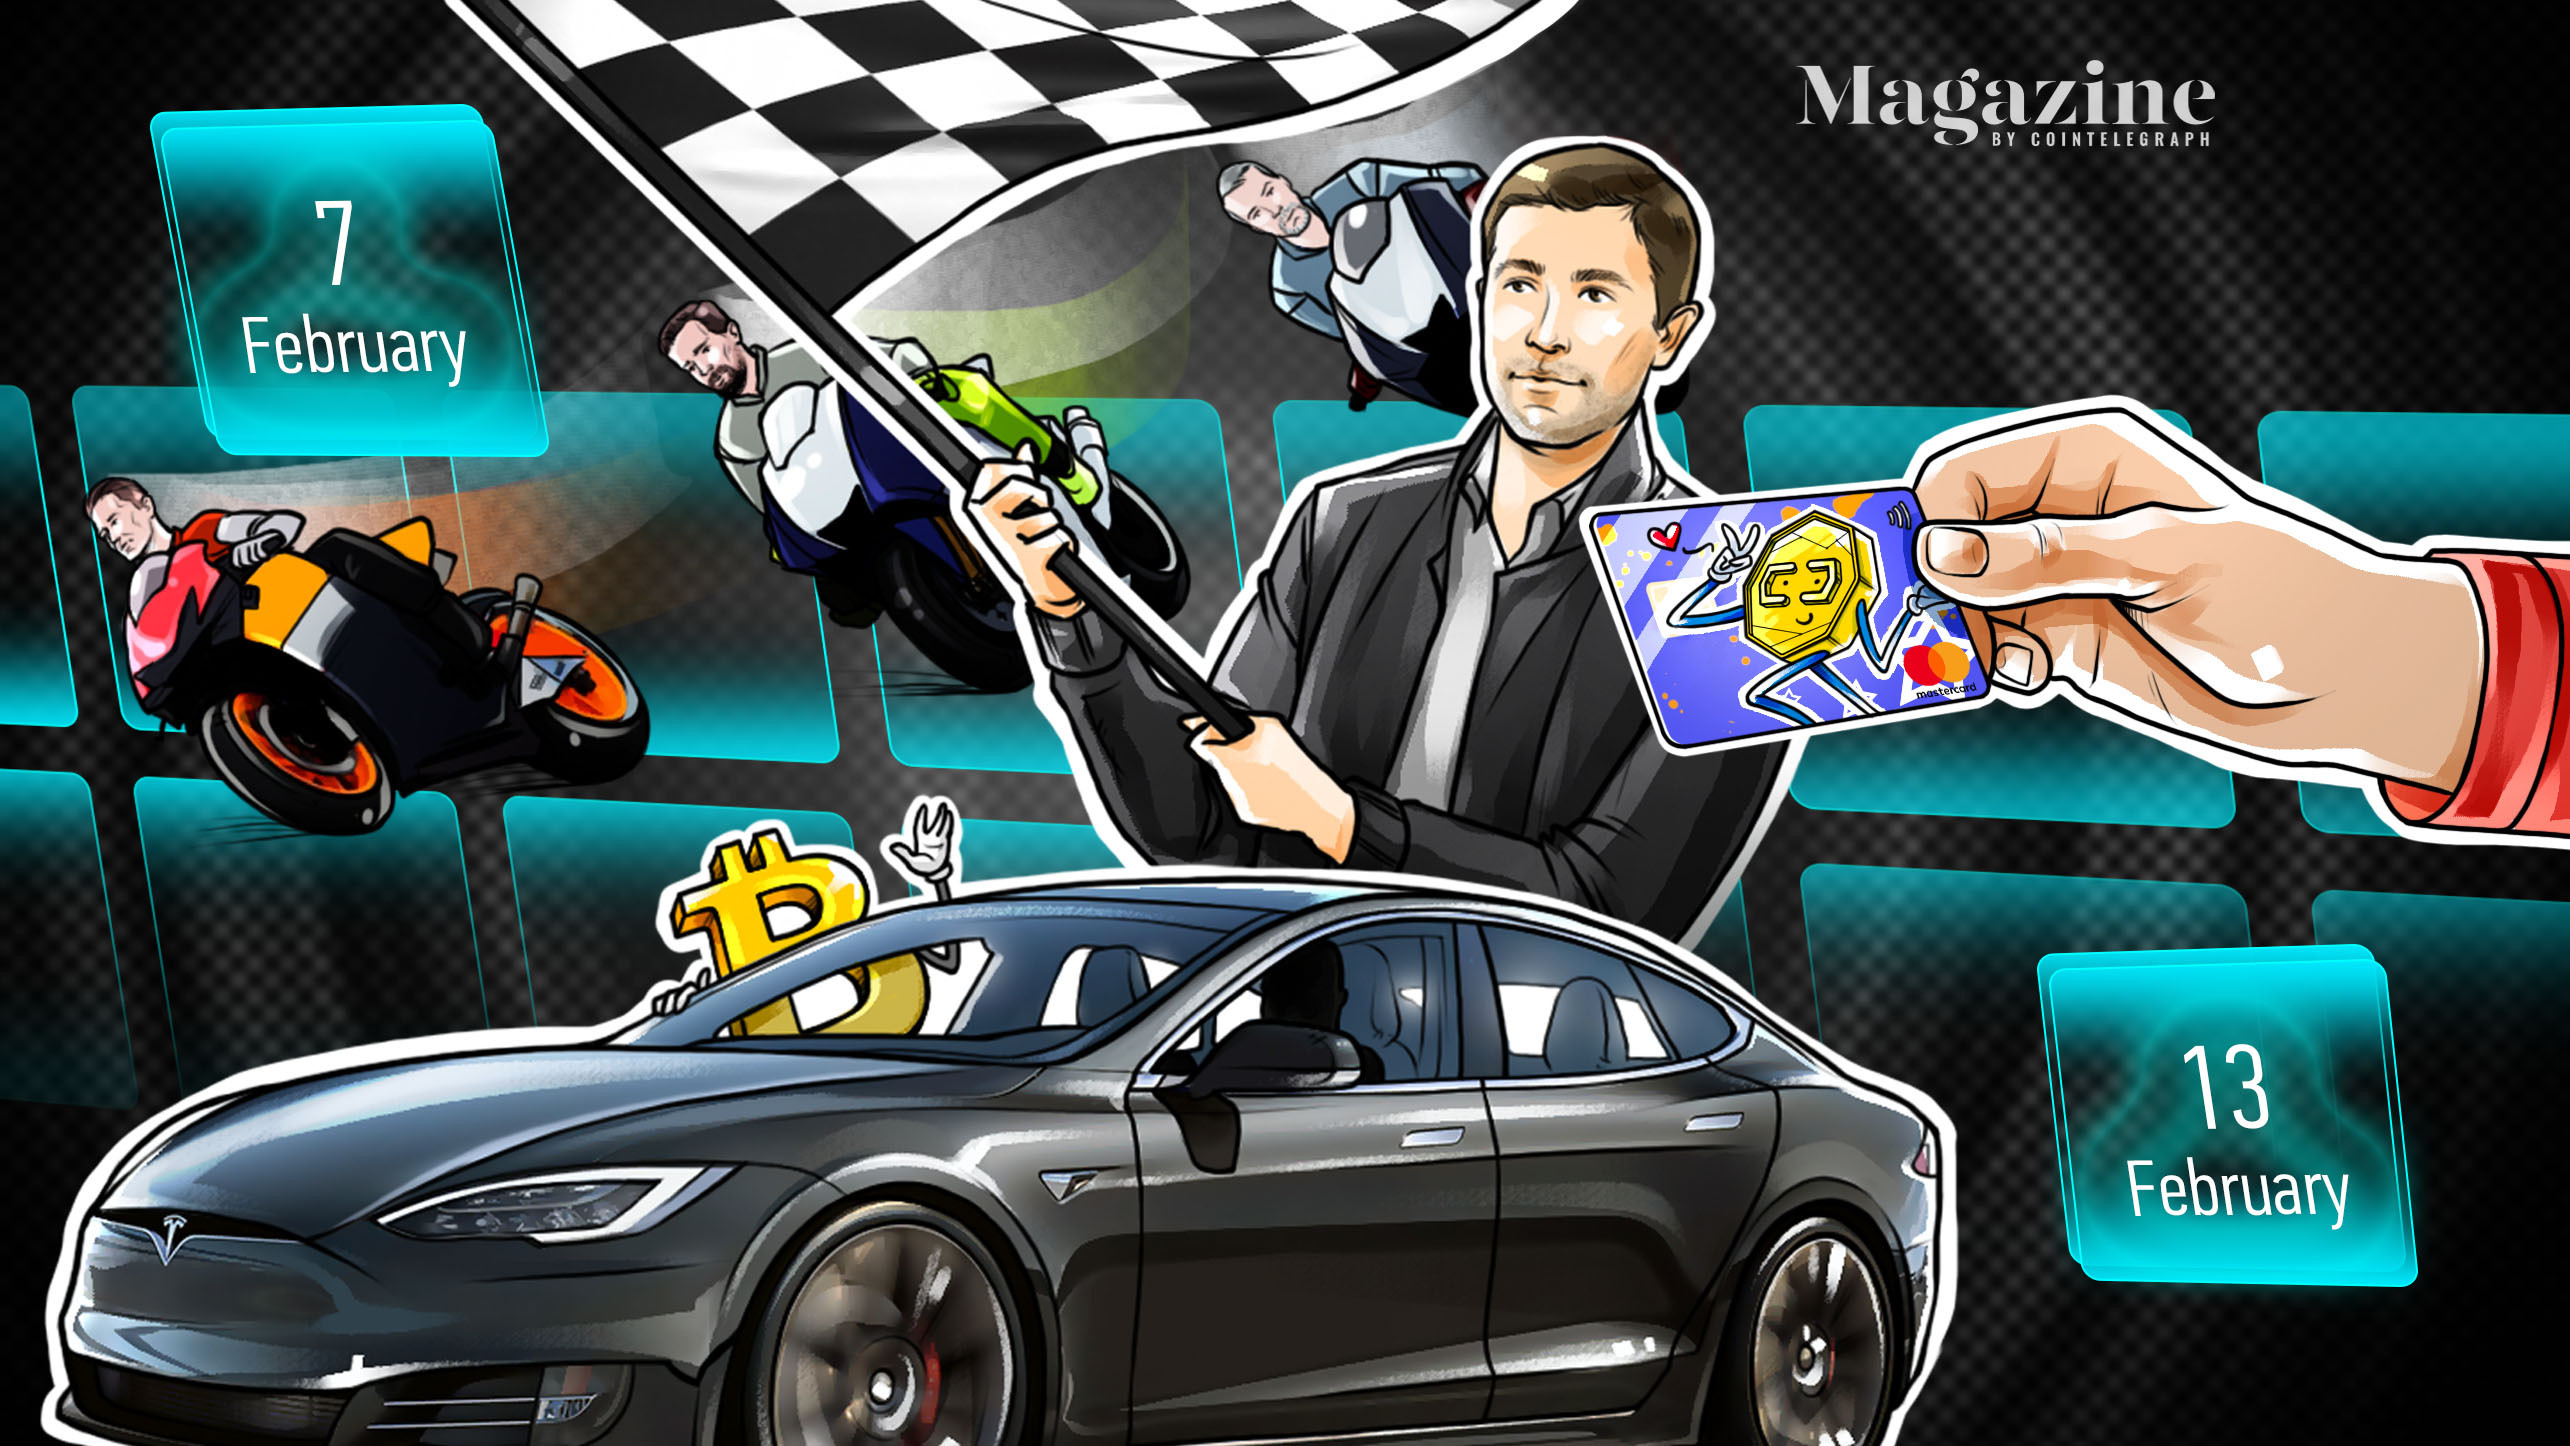 Tesla buys BTC, Mastercard supports crypto, DOGE founder speaks out: Hodler's Digest, Feb. 7–13